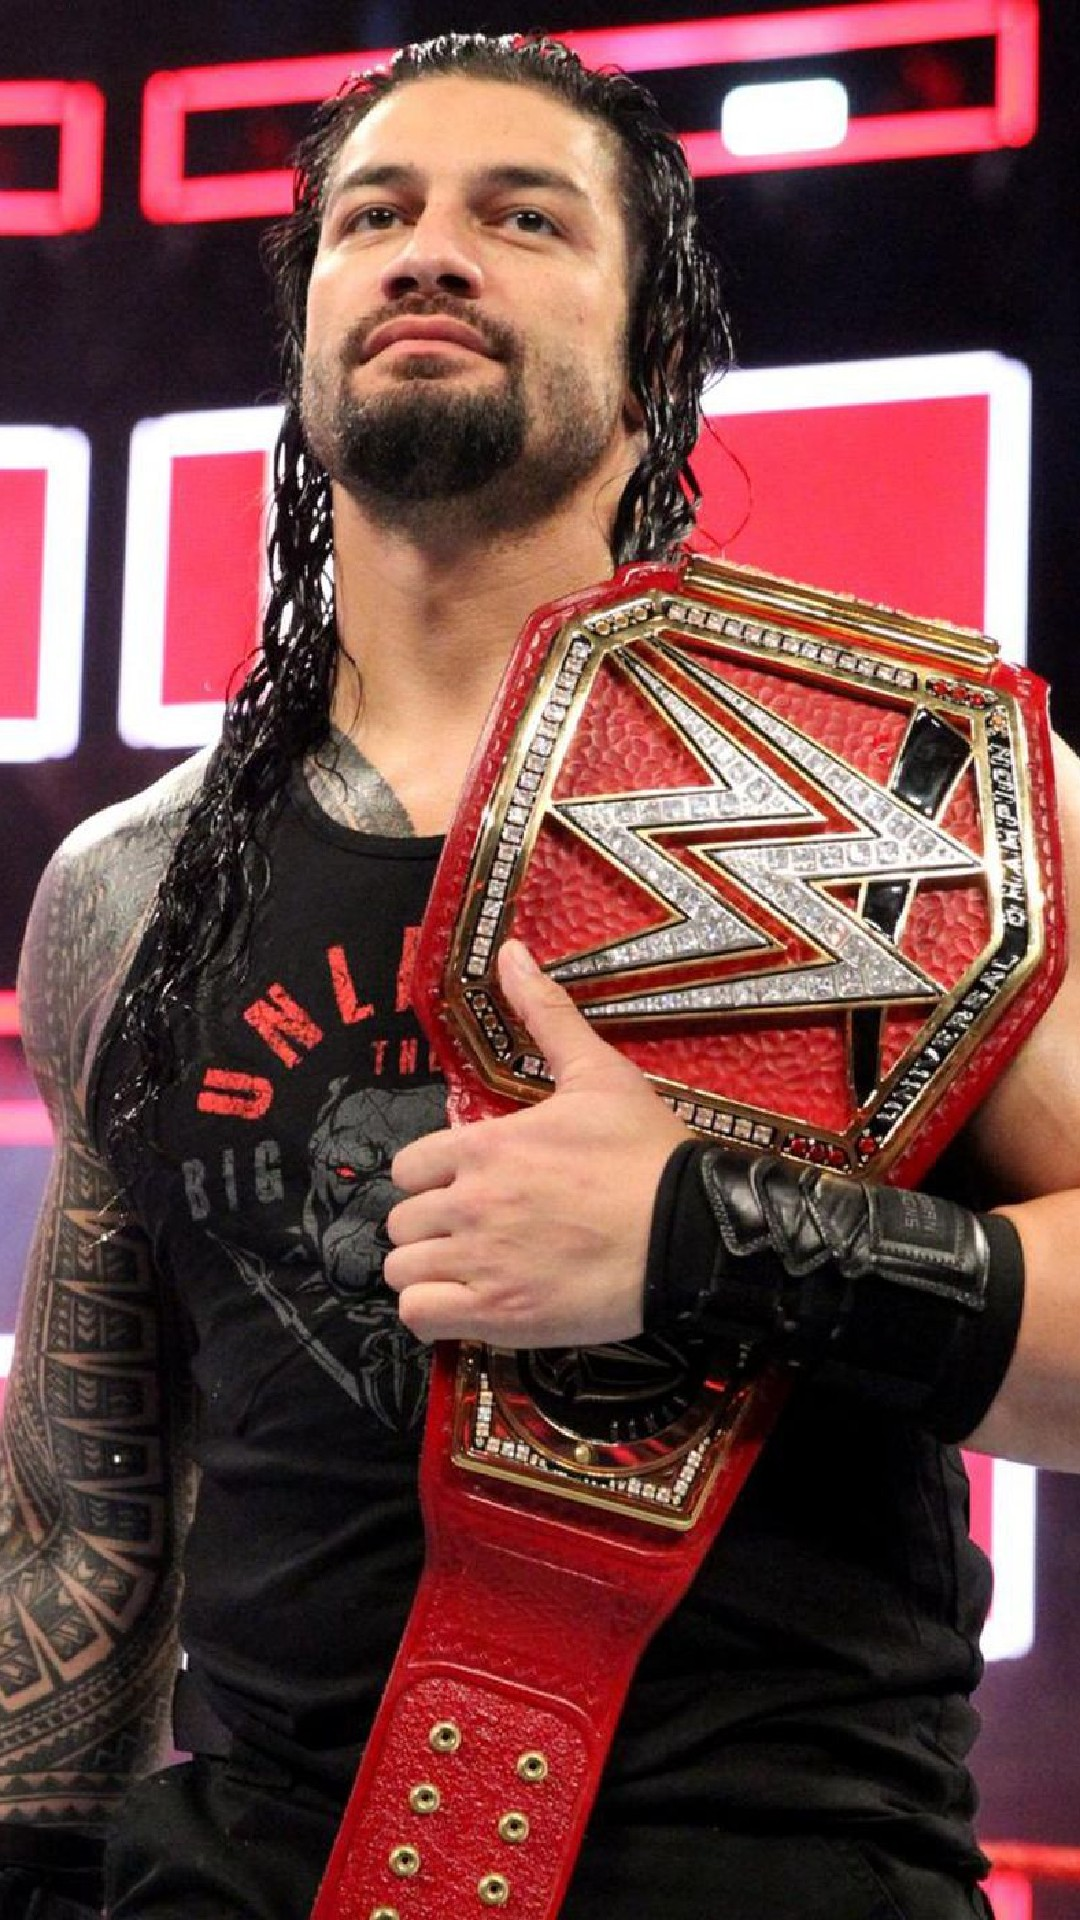 Top 75 Roman Reigns Wallpapers Download [ 2020 Collection ]